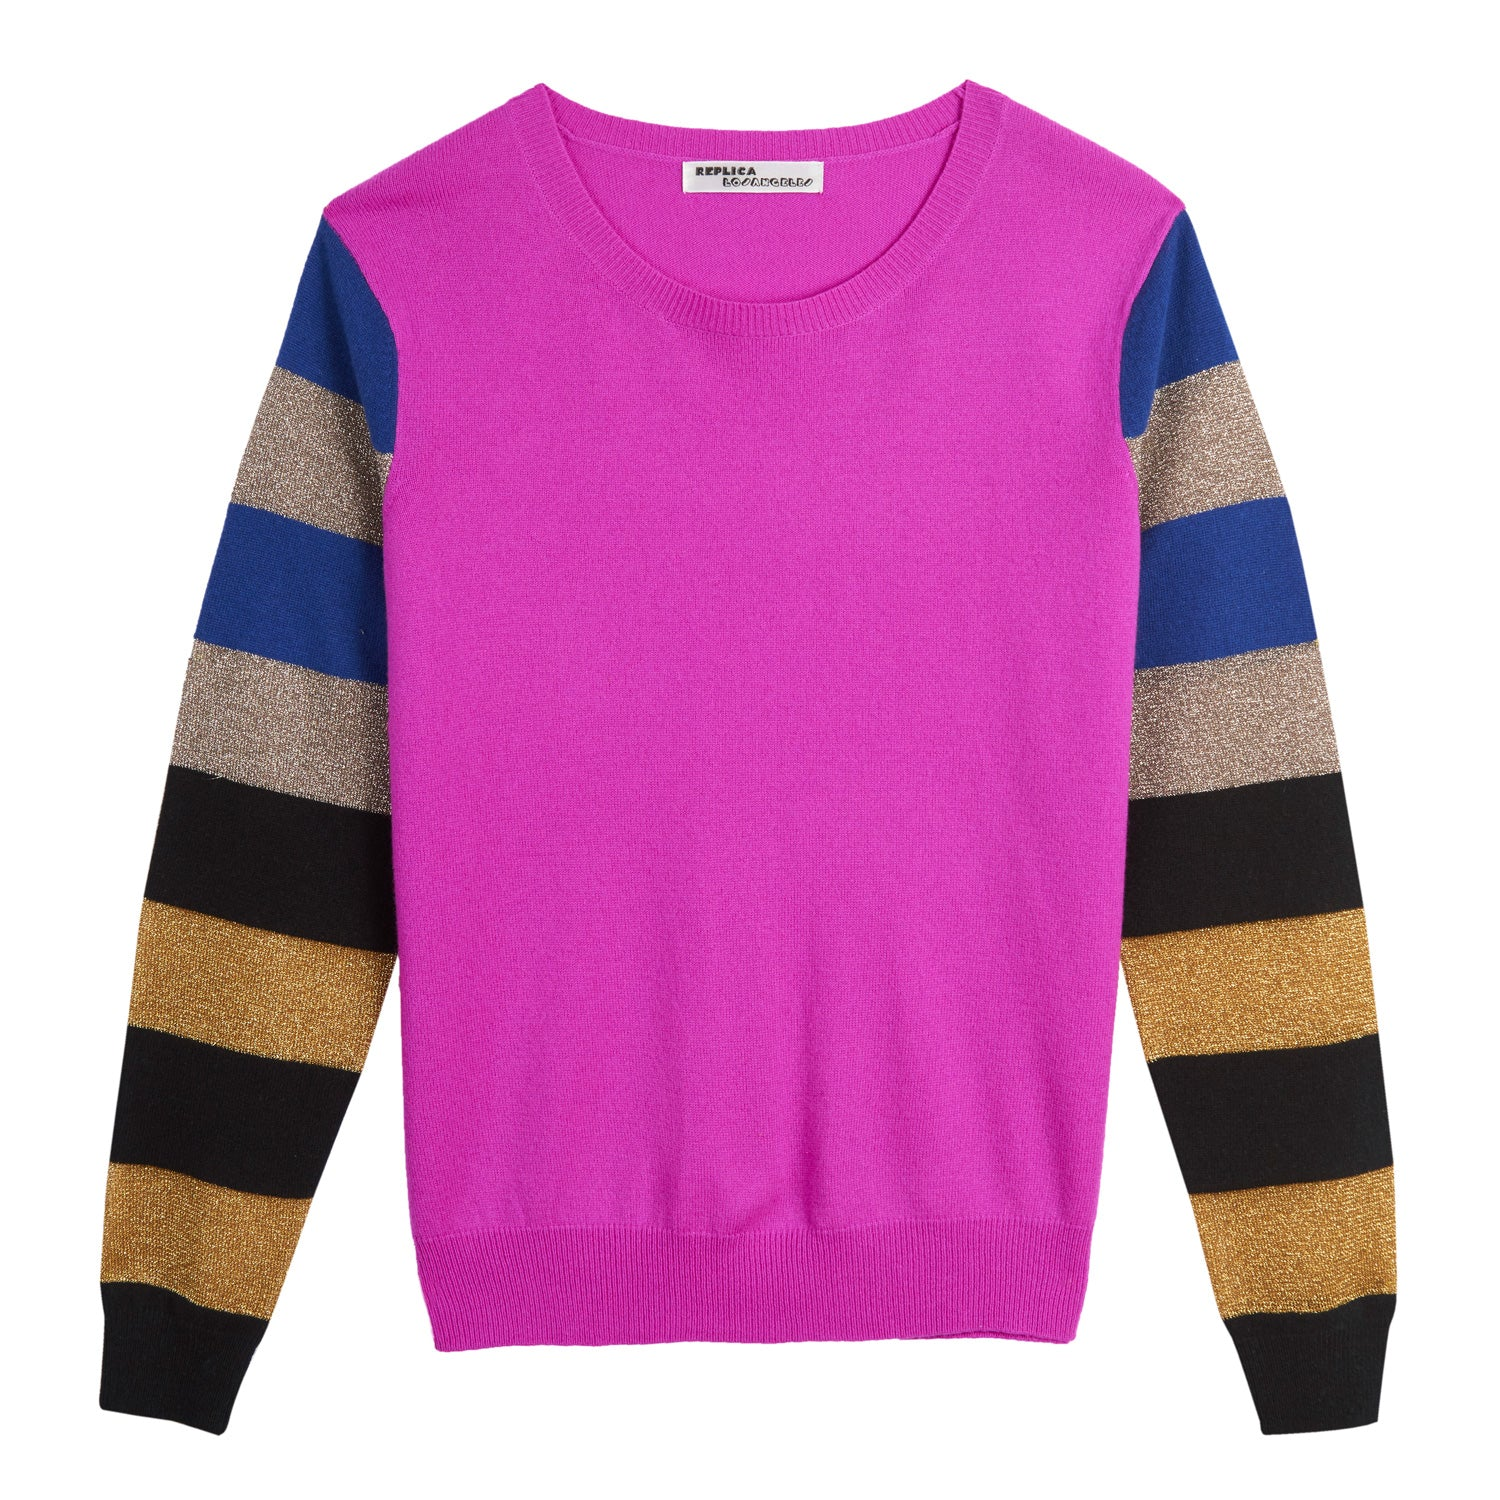 Cashmere and Lurex Discoball Sweatshirt